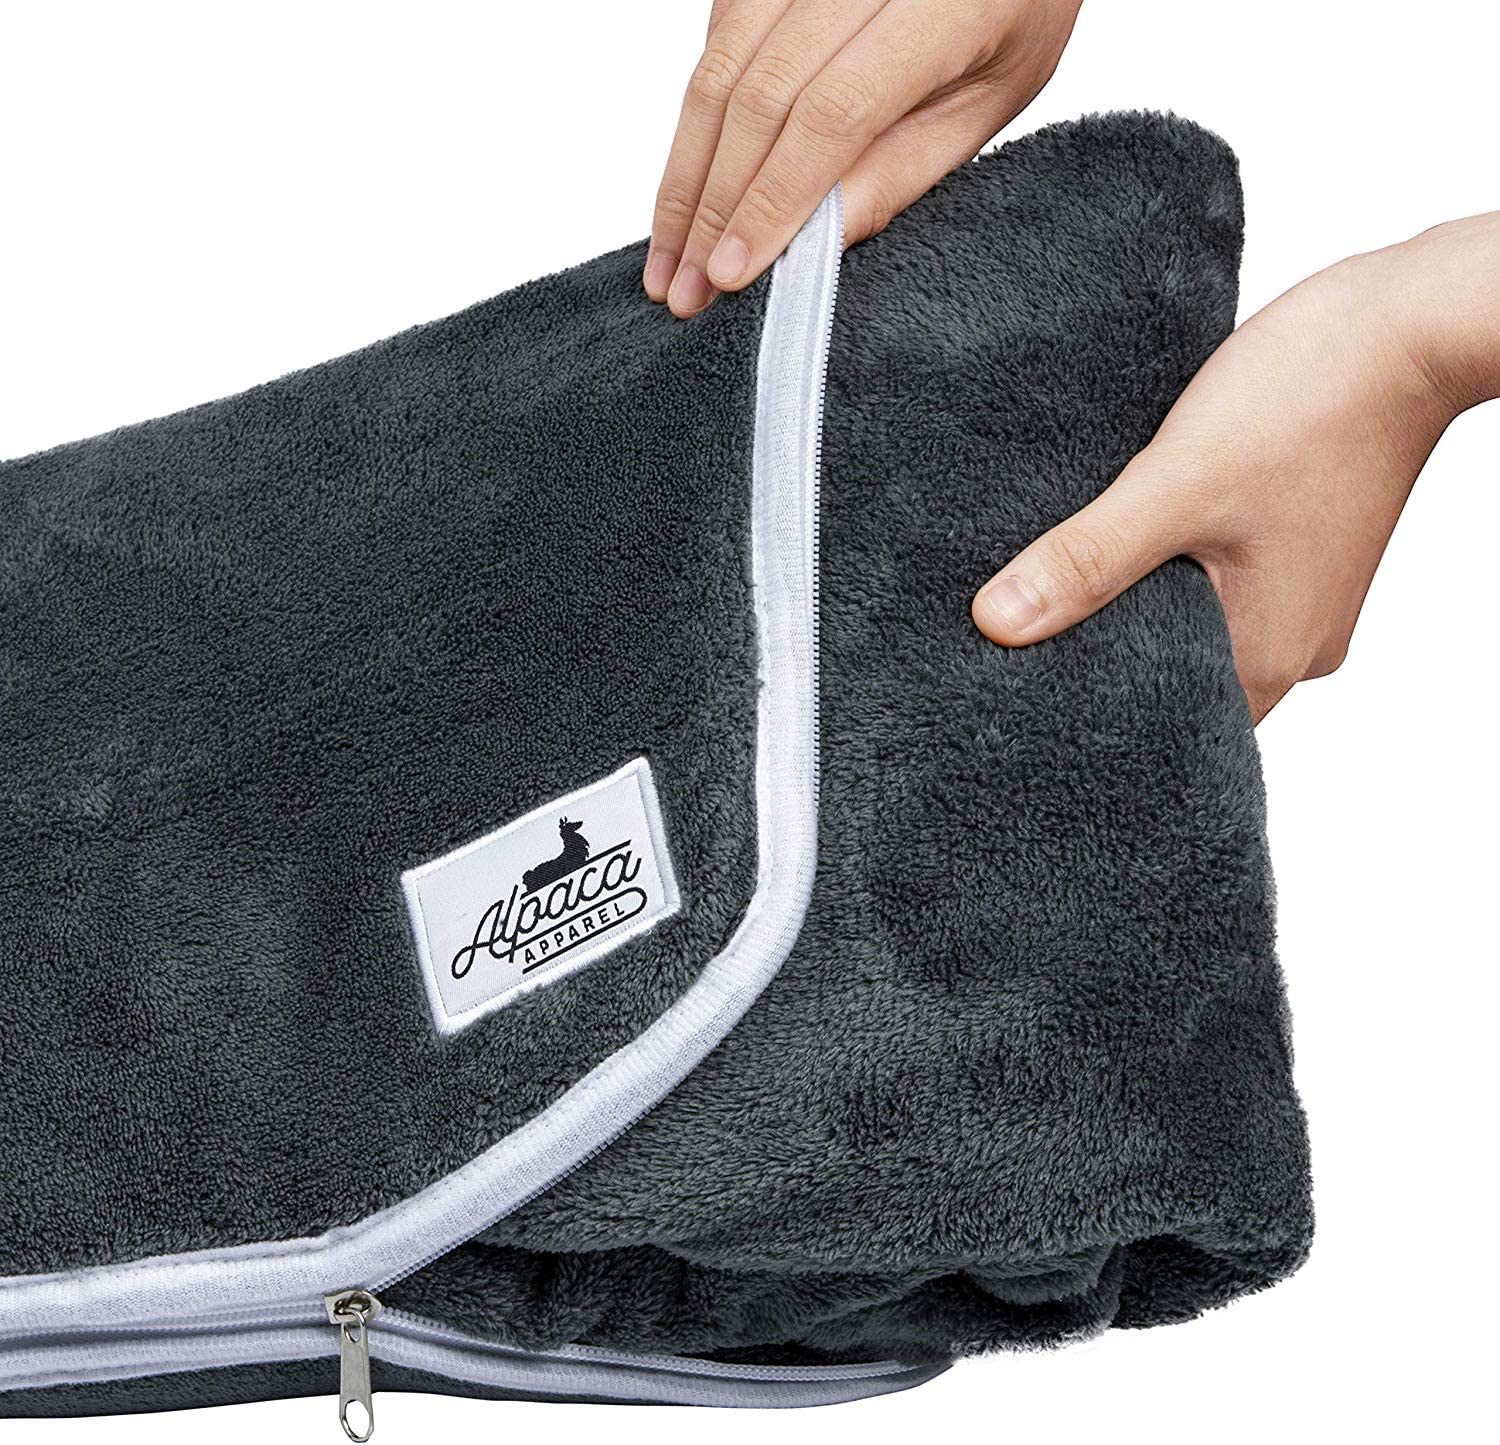 AlpacaApparel Premium Compact Travel Blanket | Soft Microplush Fabric | Easy Repack and Lightweight | Luggage Belt and Backpack Strap | Airplane Plane Pillowcase 2-in-1 | Charcoal Gray